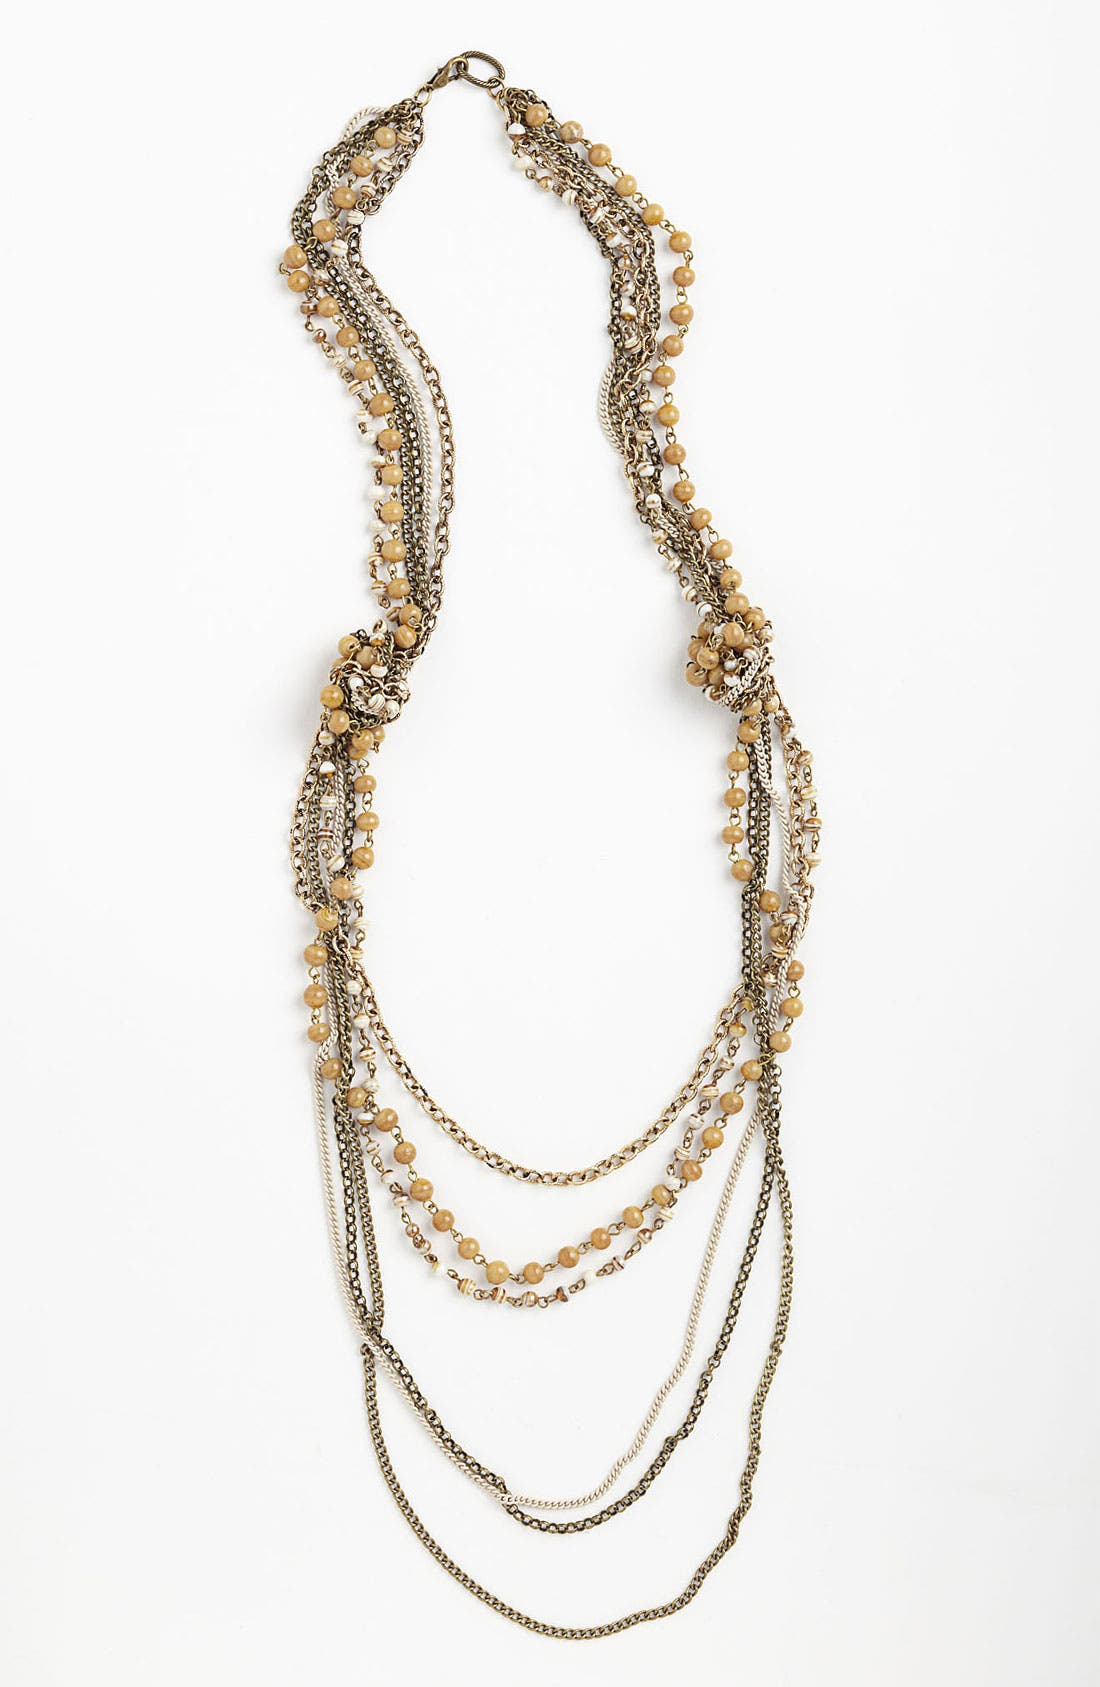 Main Image - Bonnie Jonas Multistrand Necklace